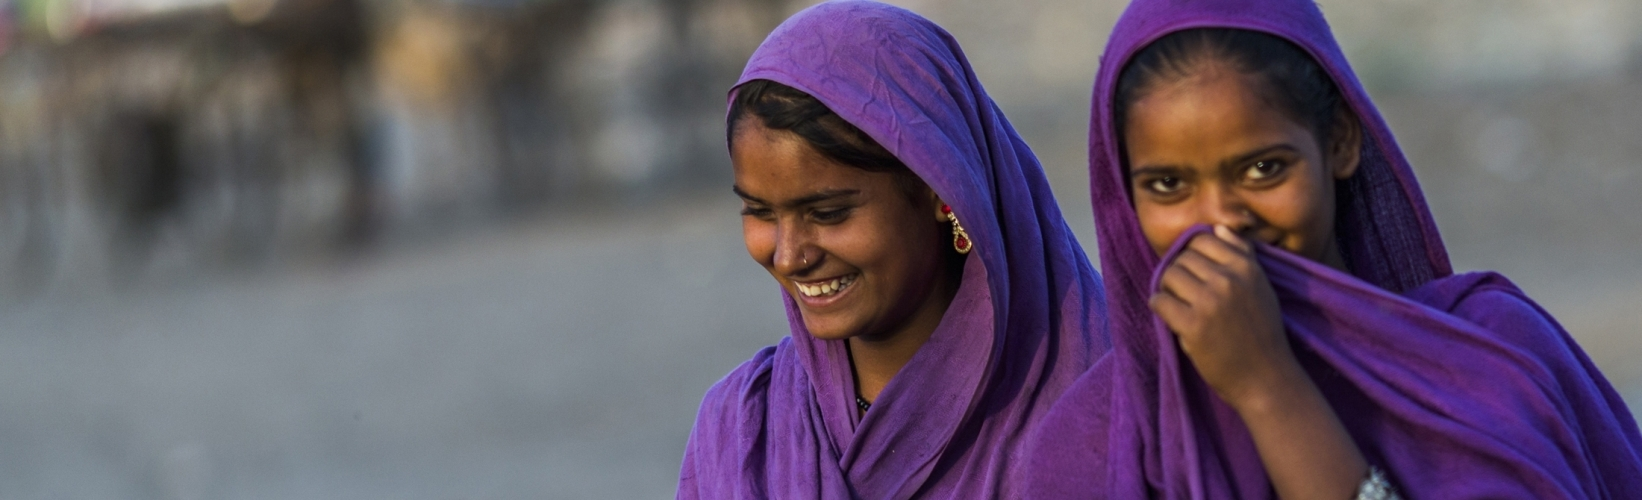 ADVOCACY: Ending Child Marriage